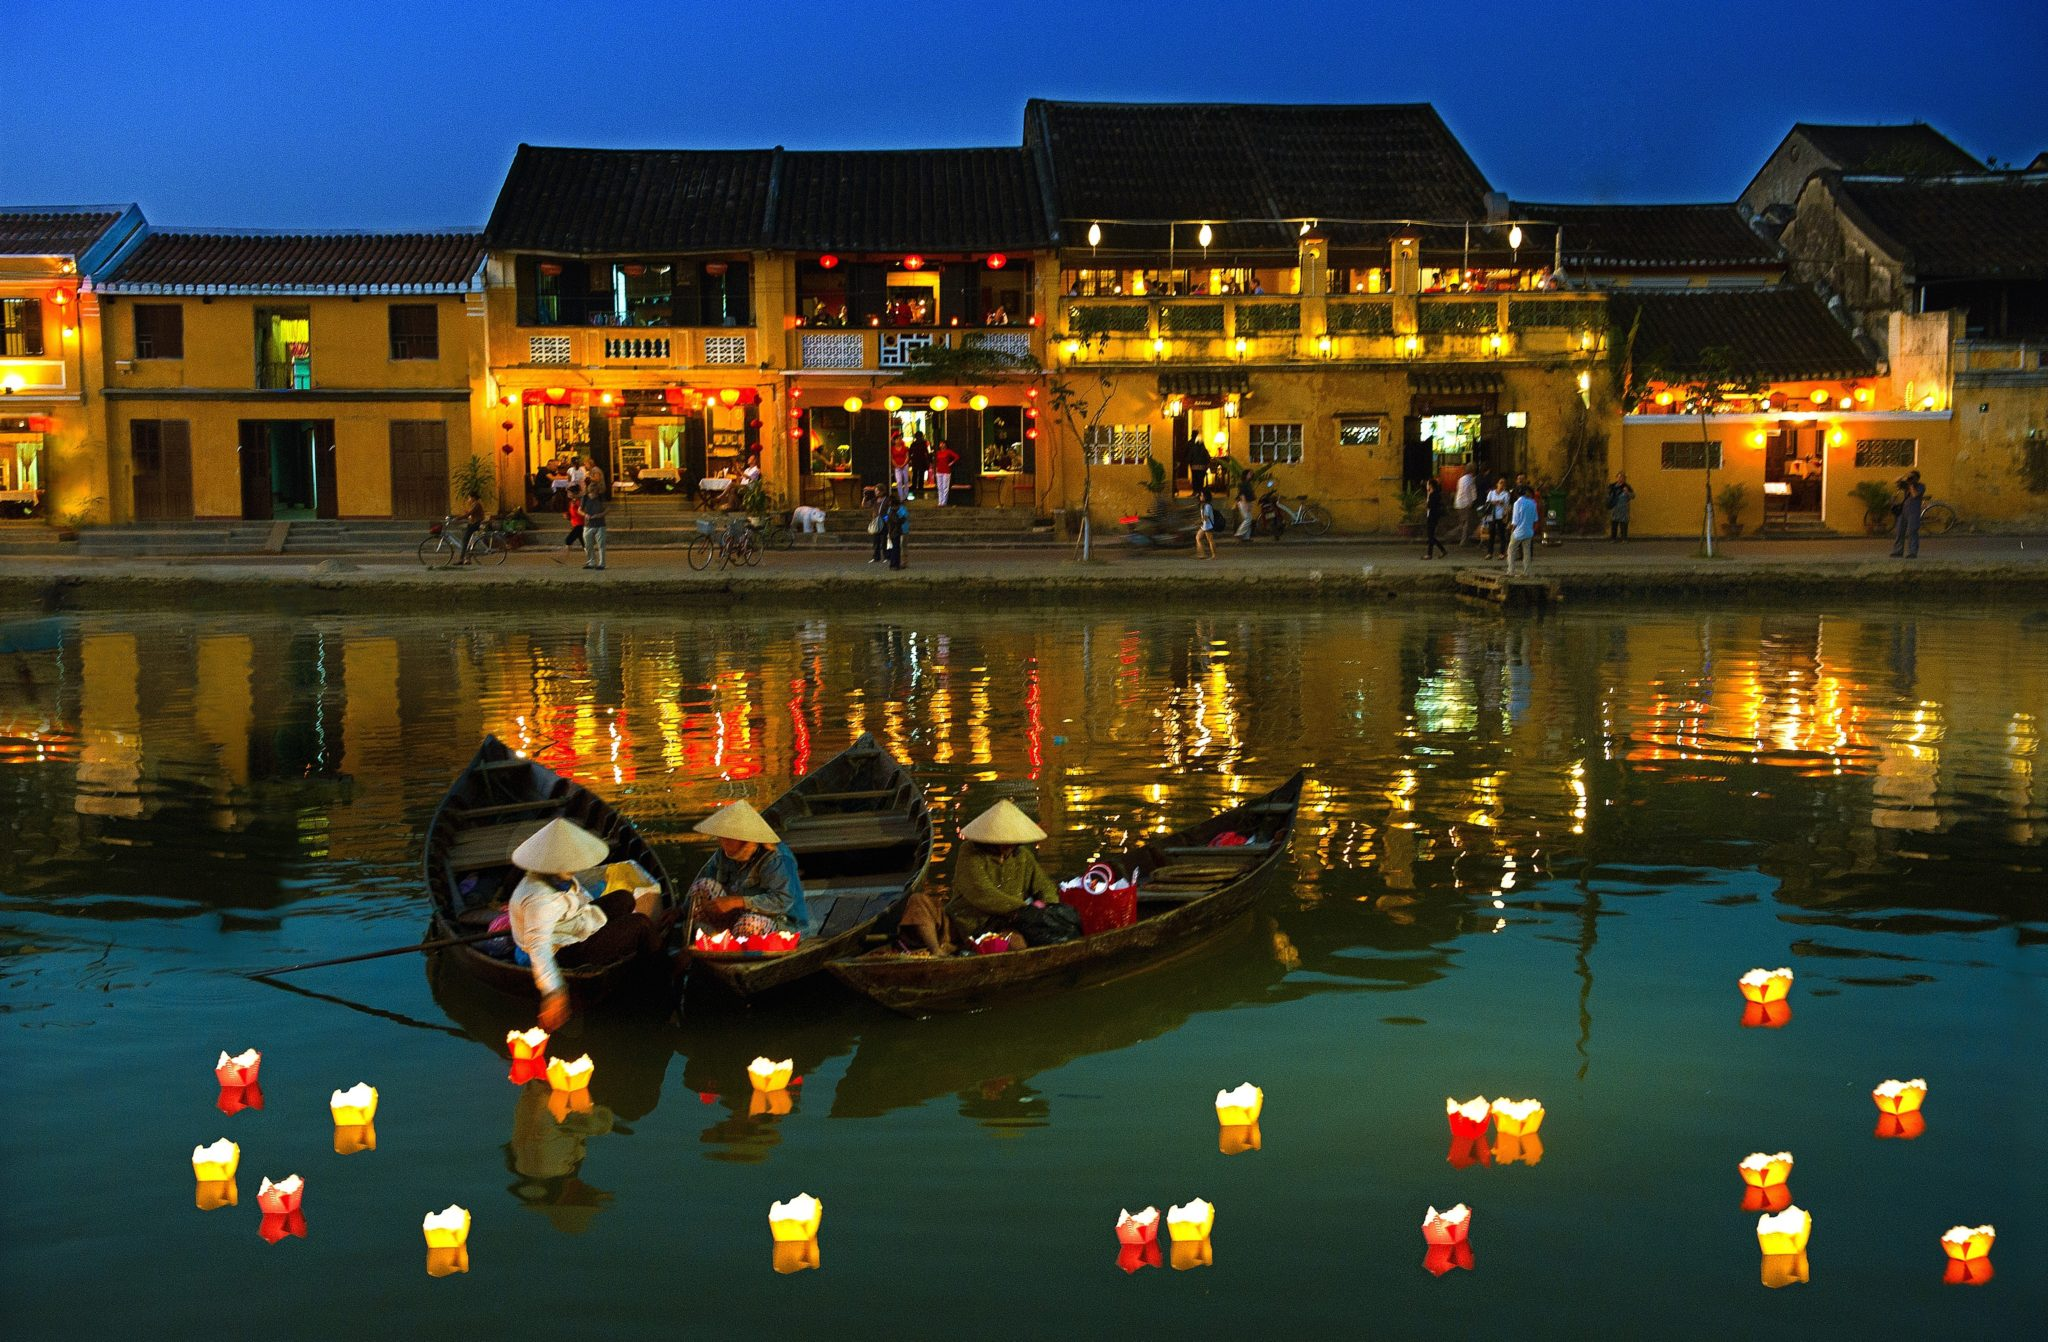 Hoi An 2 2048x1342 - Hoi An, an ancient town